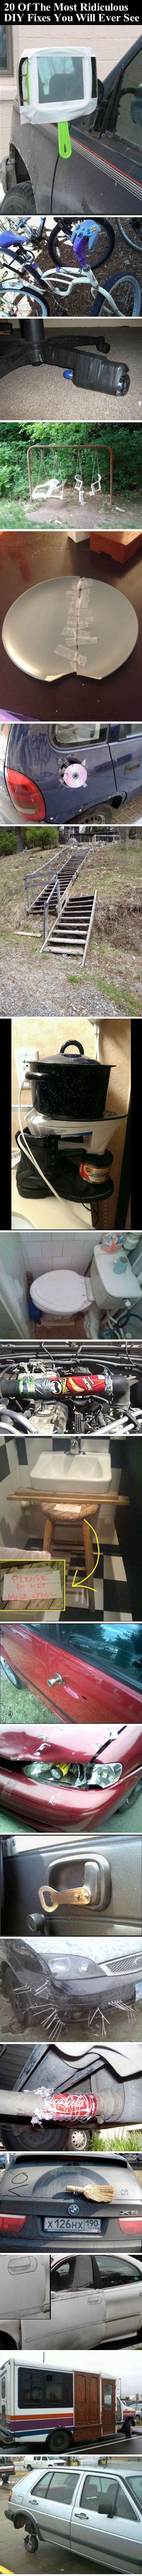 20 Of The Most Ridiculous DIY Fixes You Will Ever See  funny lol humor funny pictures wtf funny images